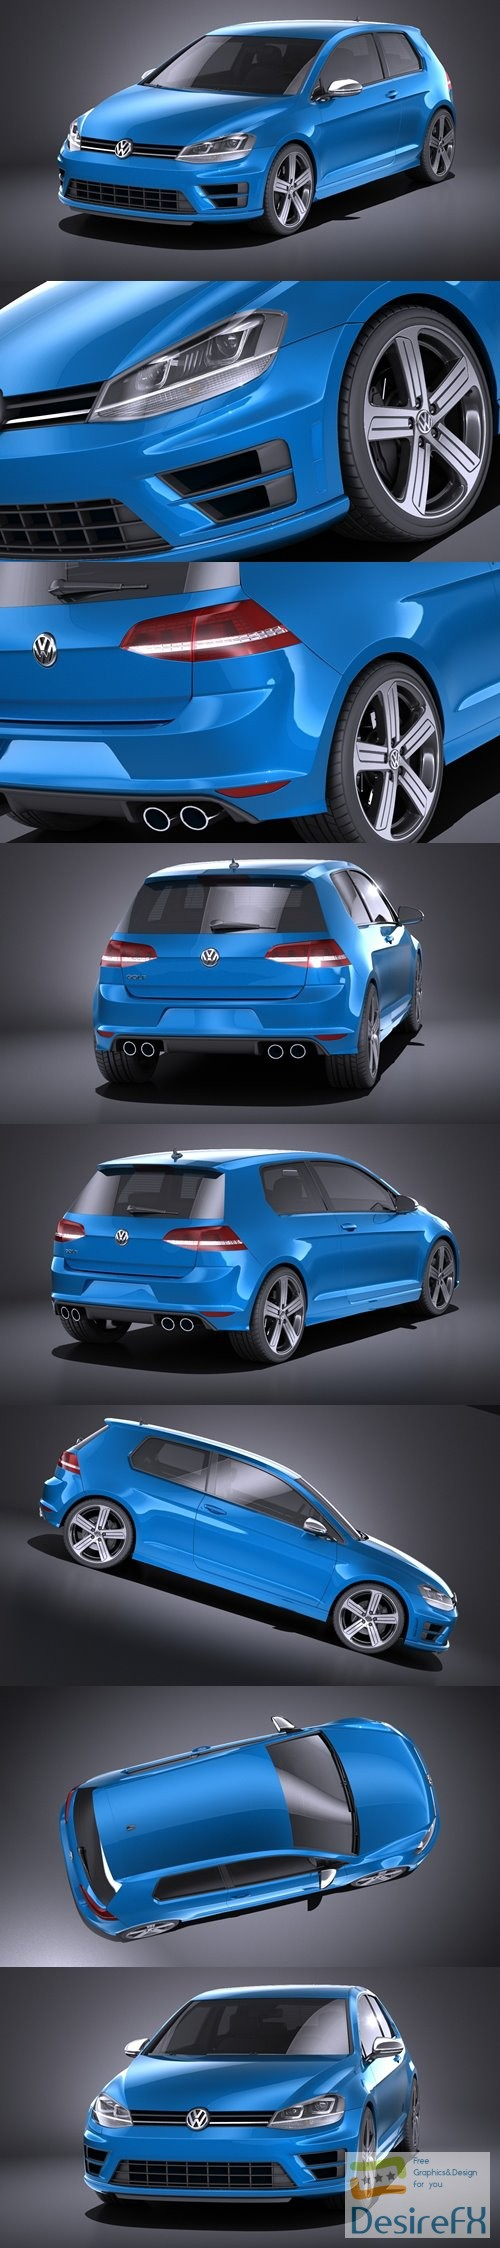 3d-models - Volkswagen Golf R 2014 3D Model